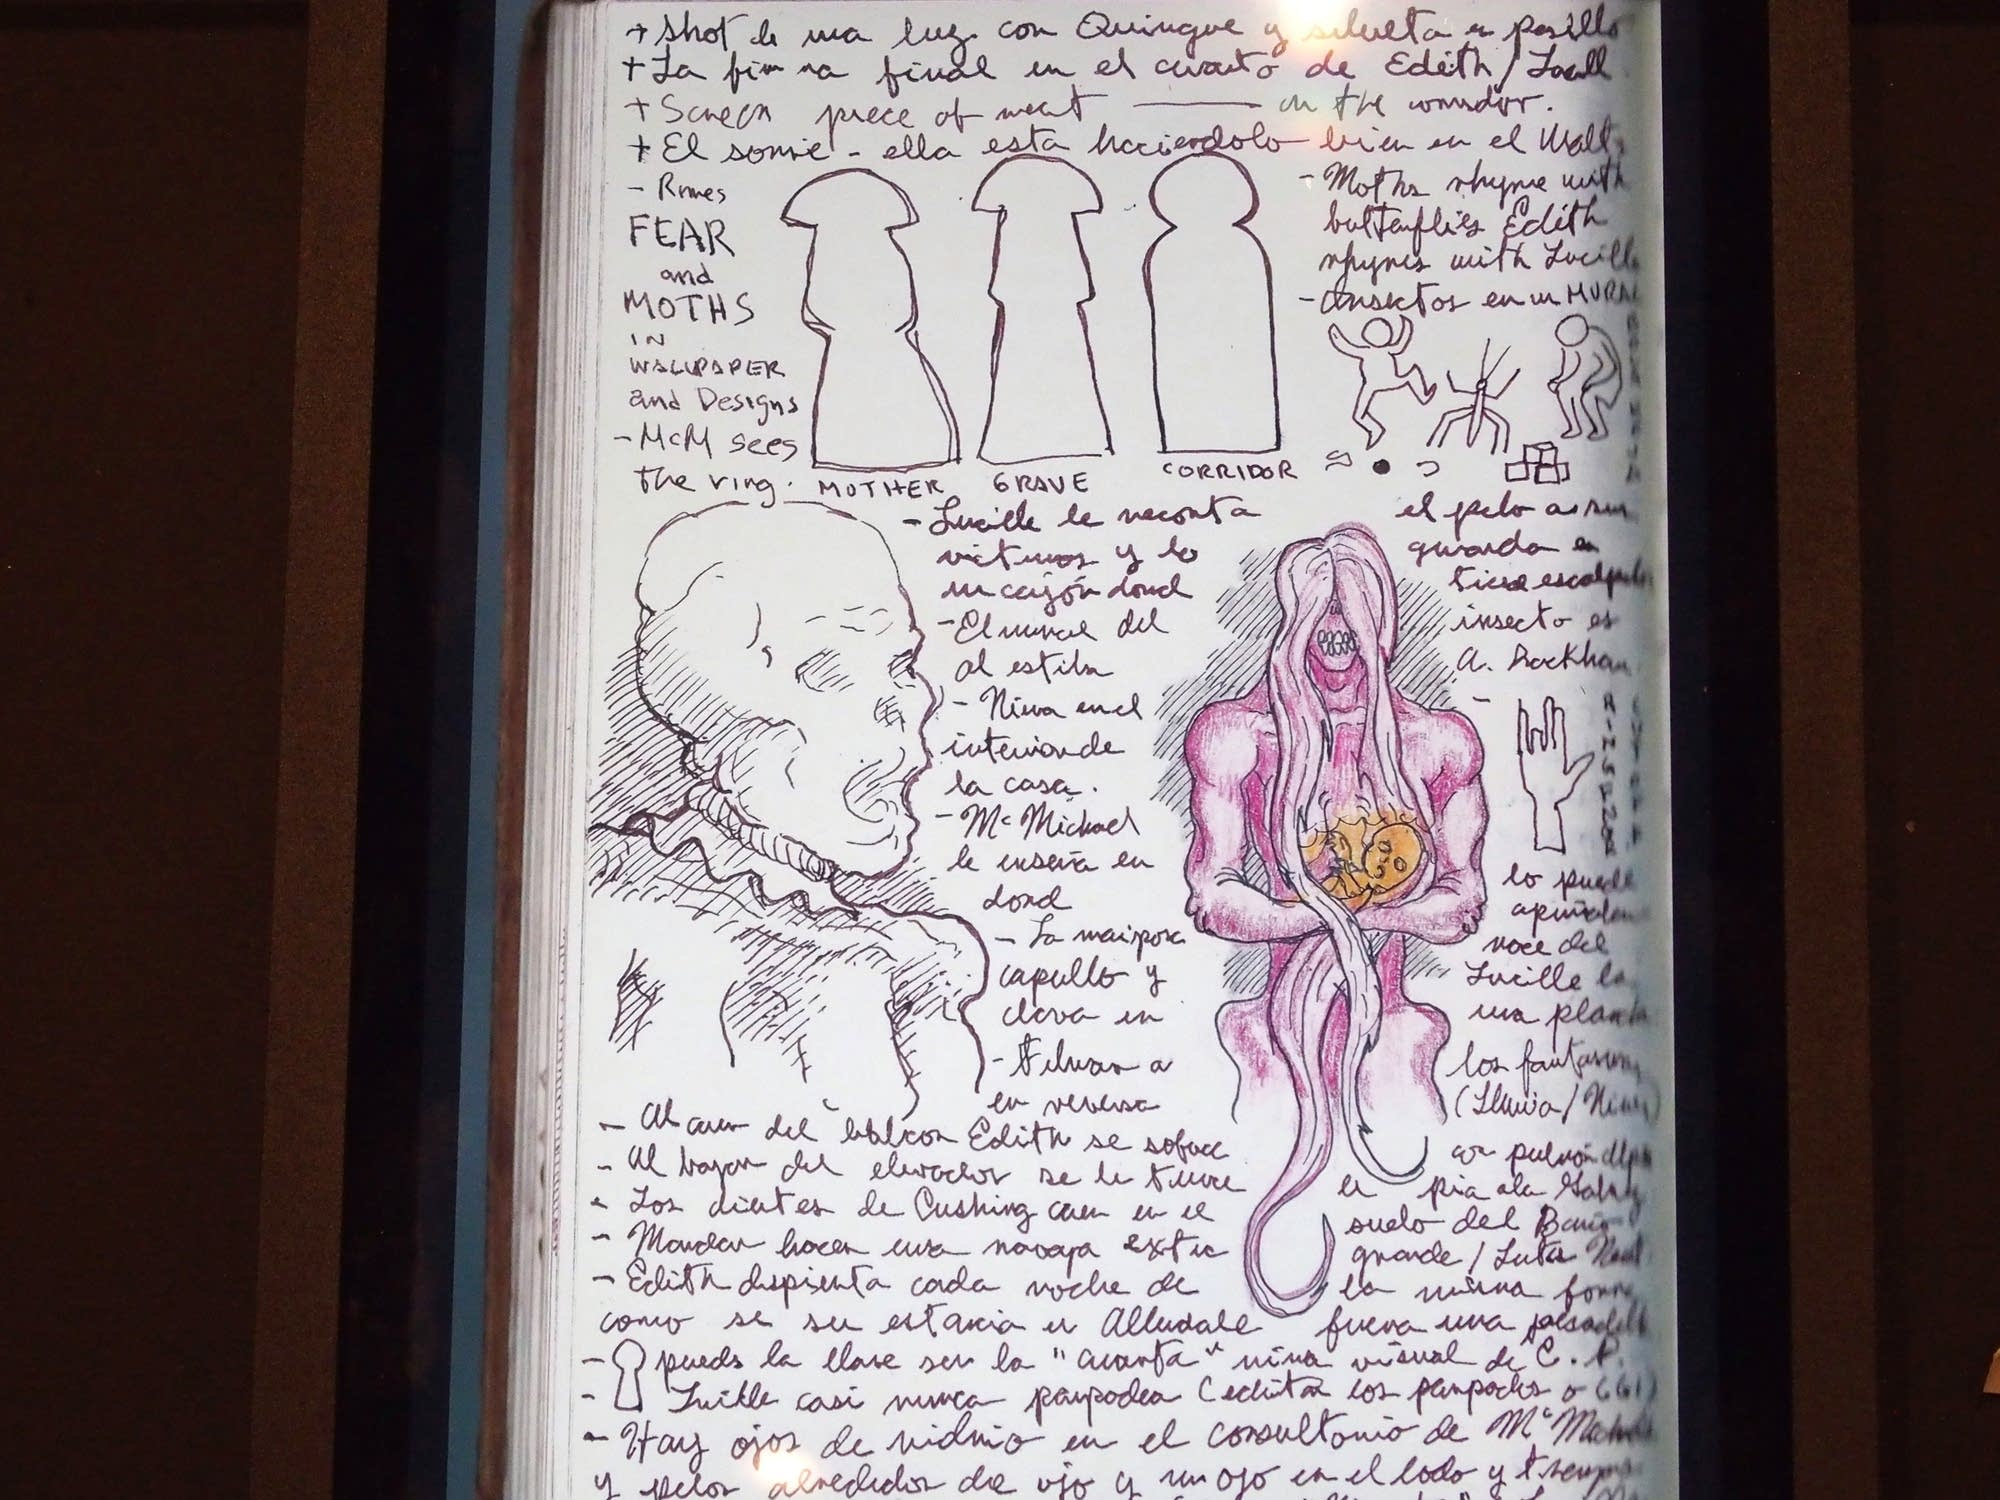 Four of del Toro's notebooks are included in the exhibit.